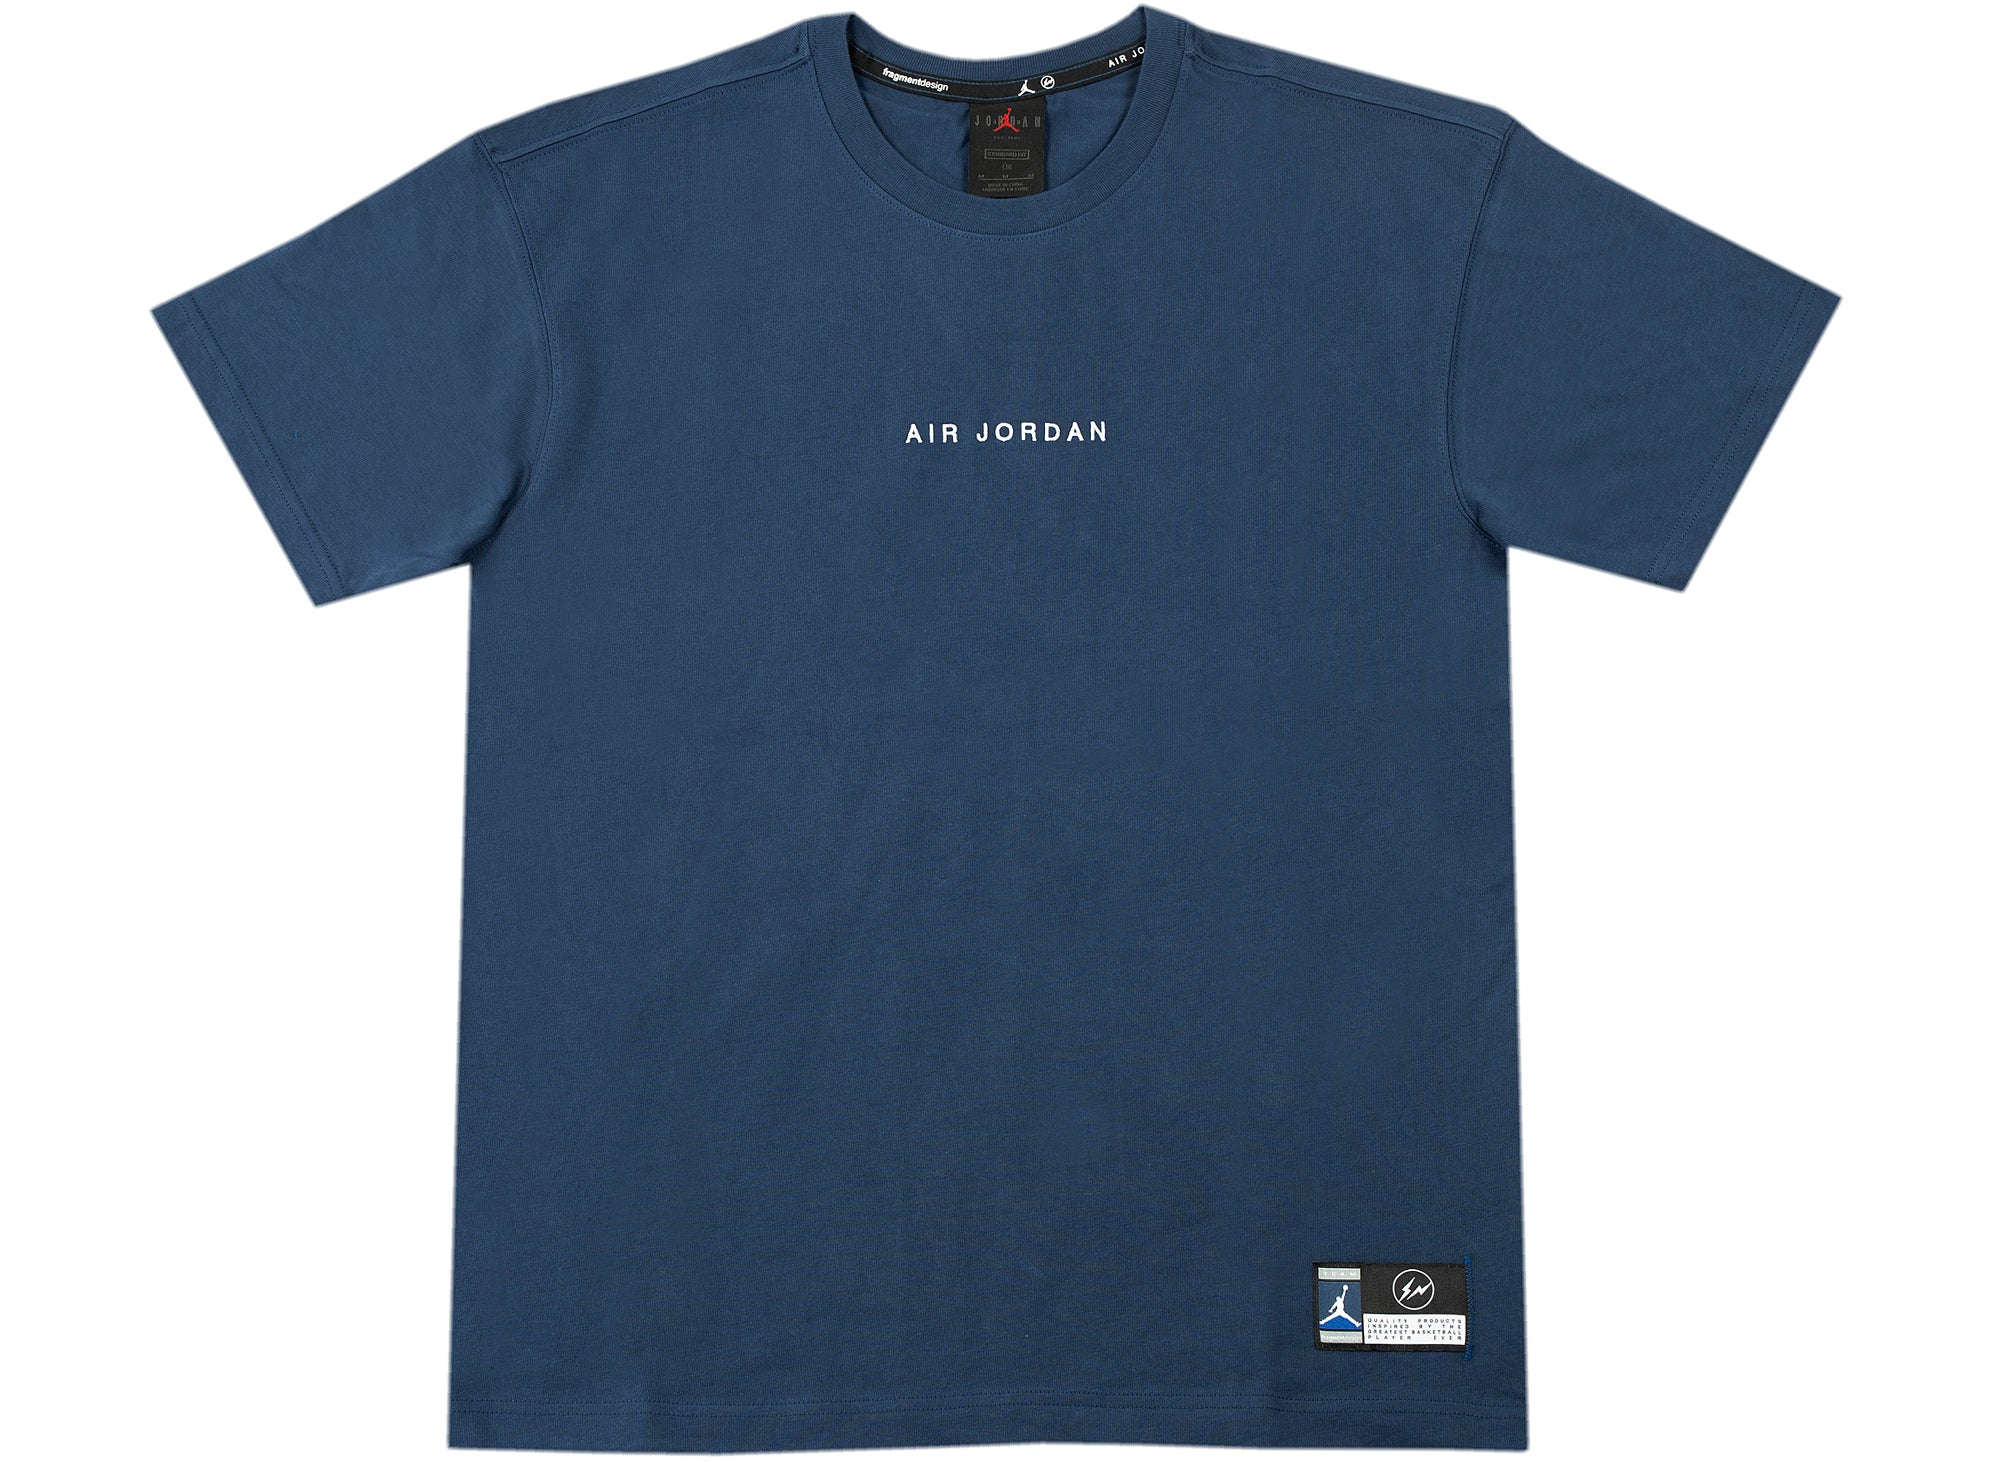 Jordan x Fragment Lifestyle Top in Navy xld